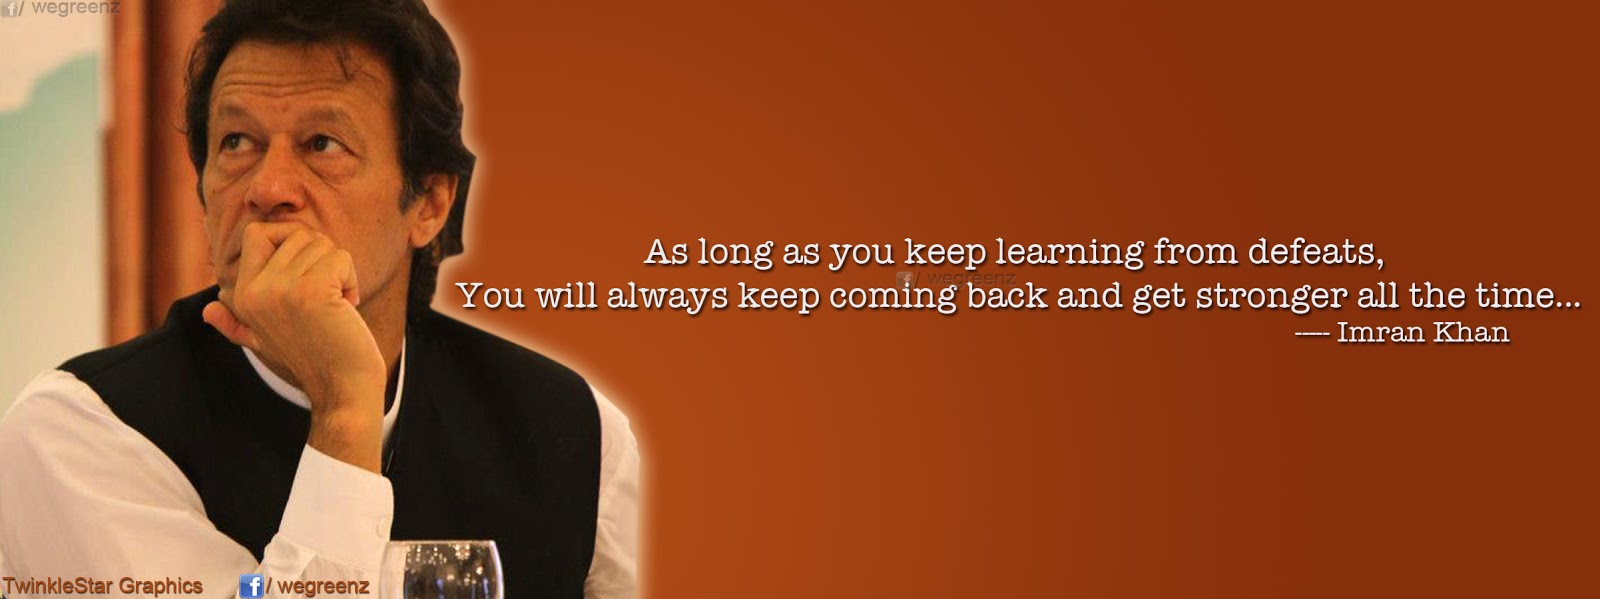 Lawyer Quotes Wallpapers Photoshop Deziner Imran Khan S Quotations Facebook Covers